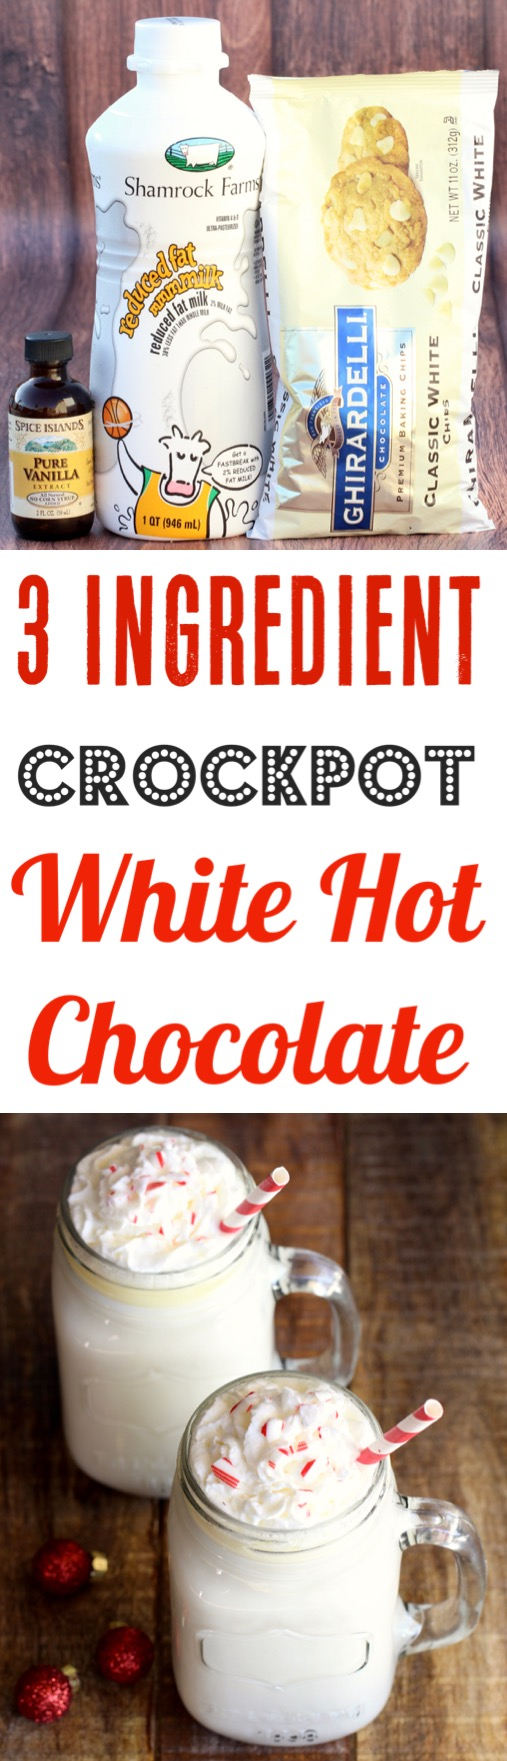 Crockpot White Hot Chocolate Recipe Easy Slow Cooker Party Drink